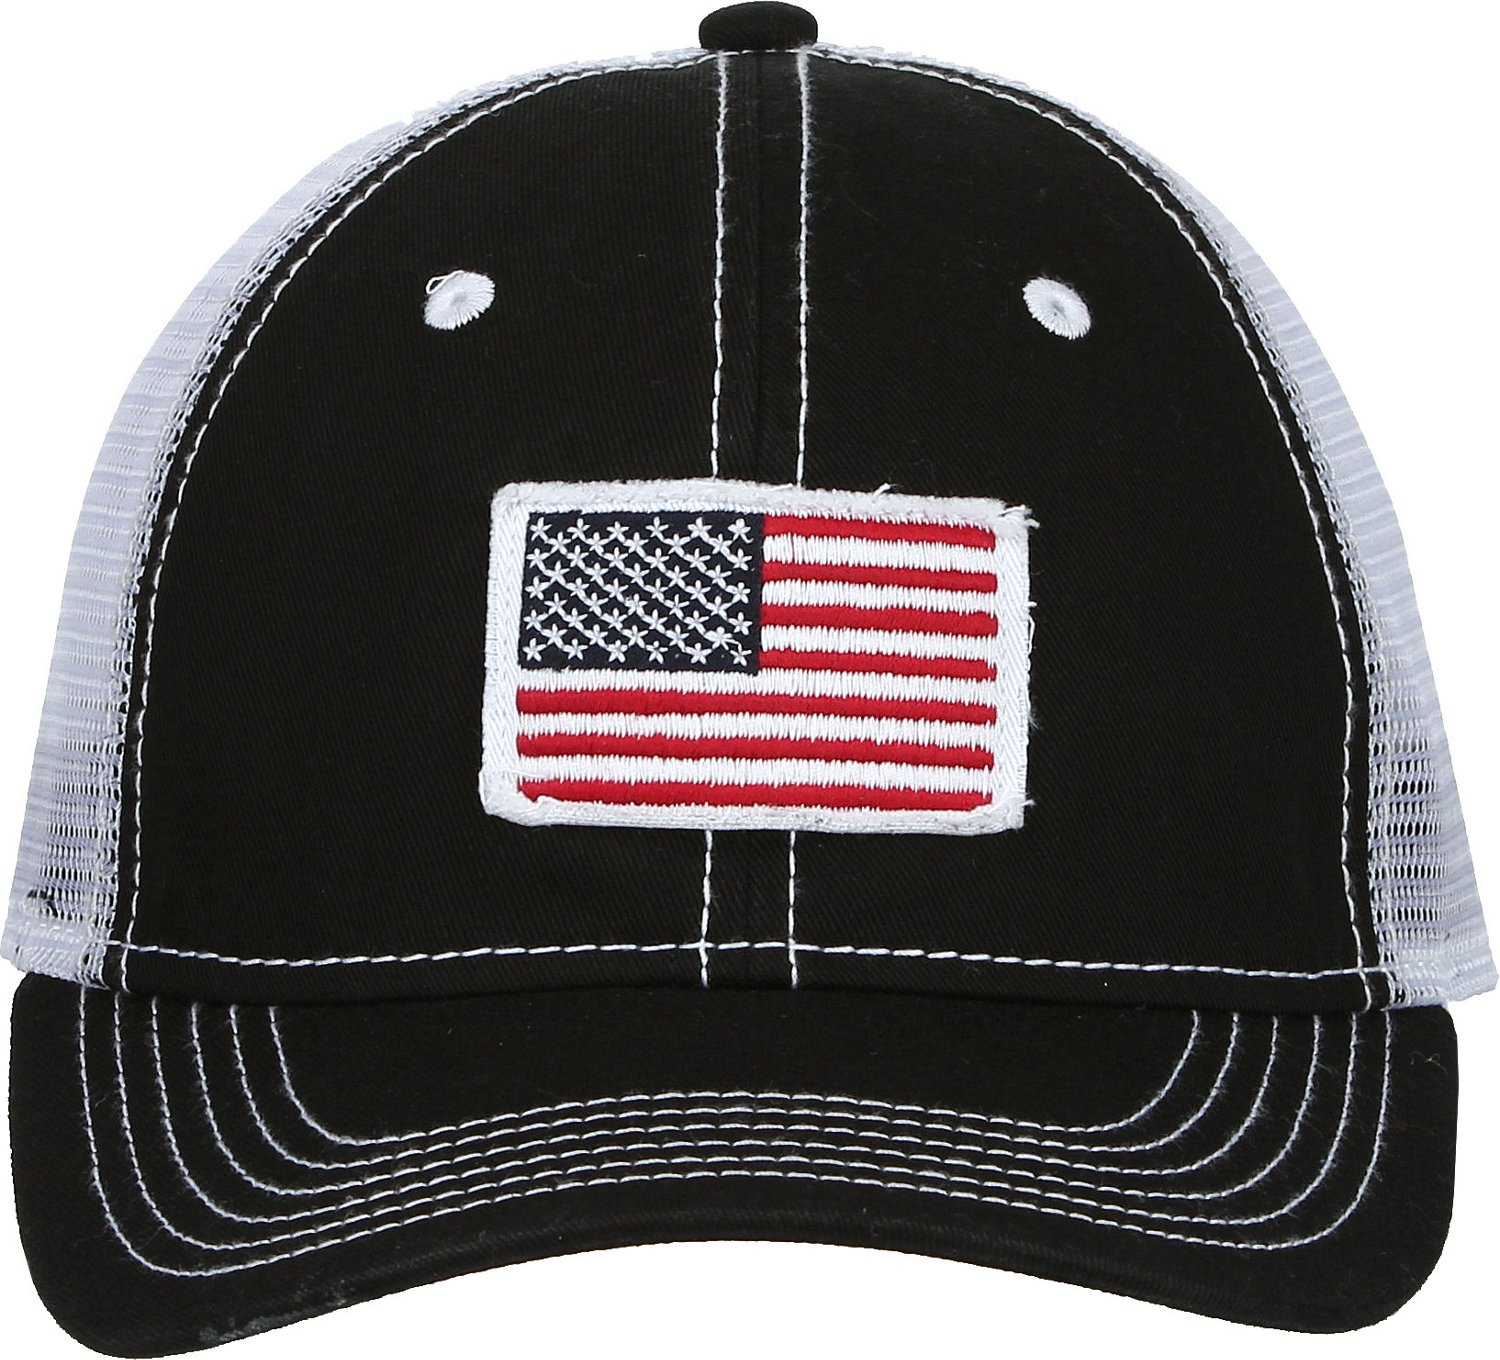 Display product reviews for Academy Sports + Outdoors Men s American Flag  Trucker Hat 67f4c3141ef